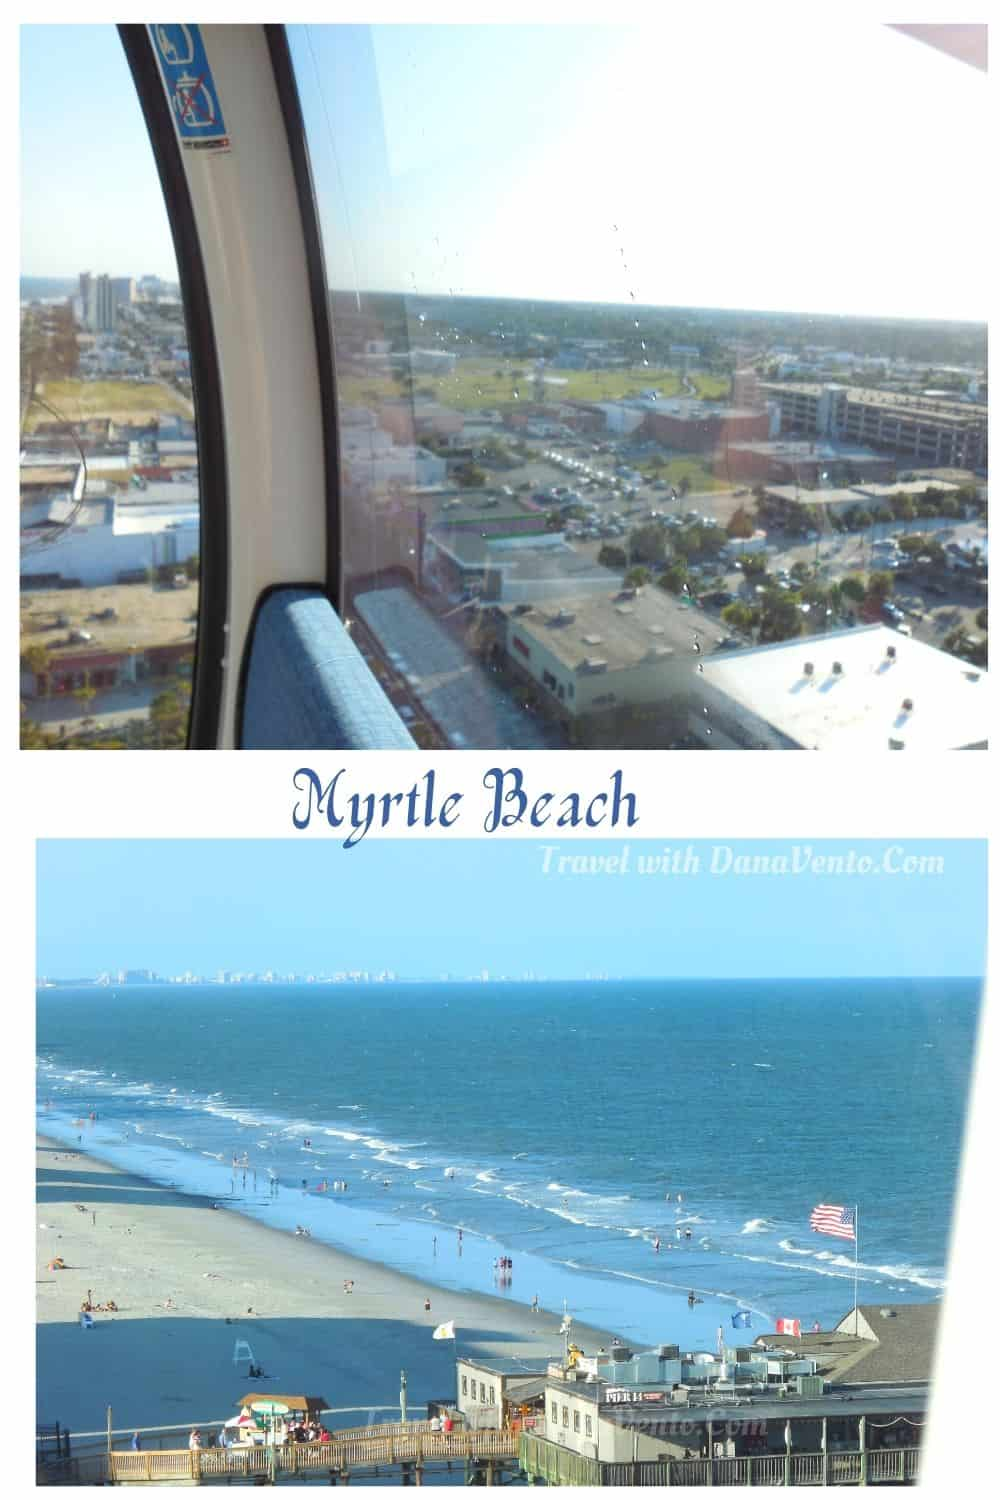 Sky High Views of Myrtle Beach Inside SkyWheel Gondola Images